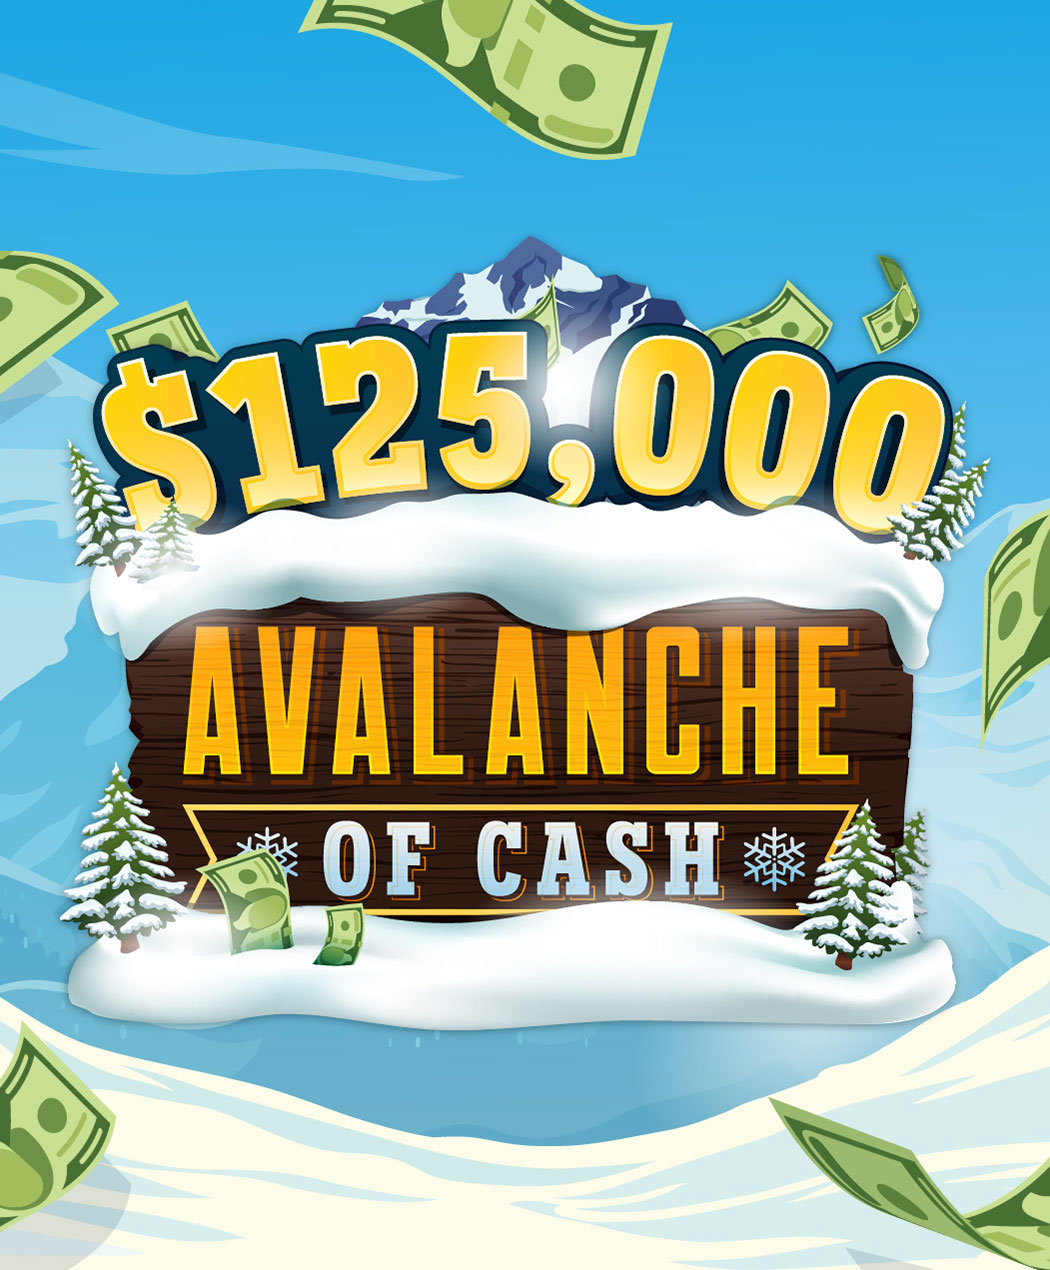 $125,000 Avalanche of Cash